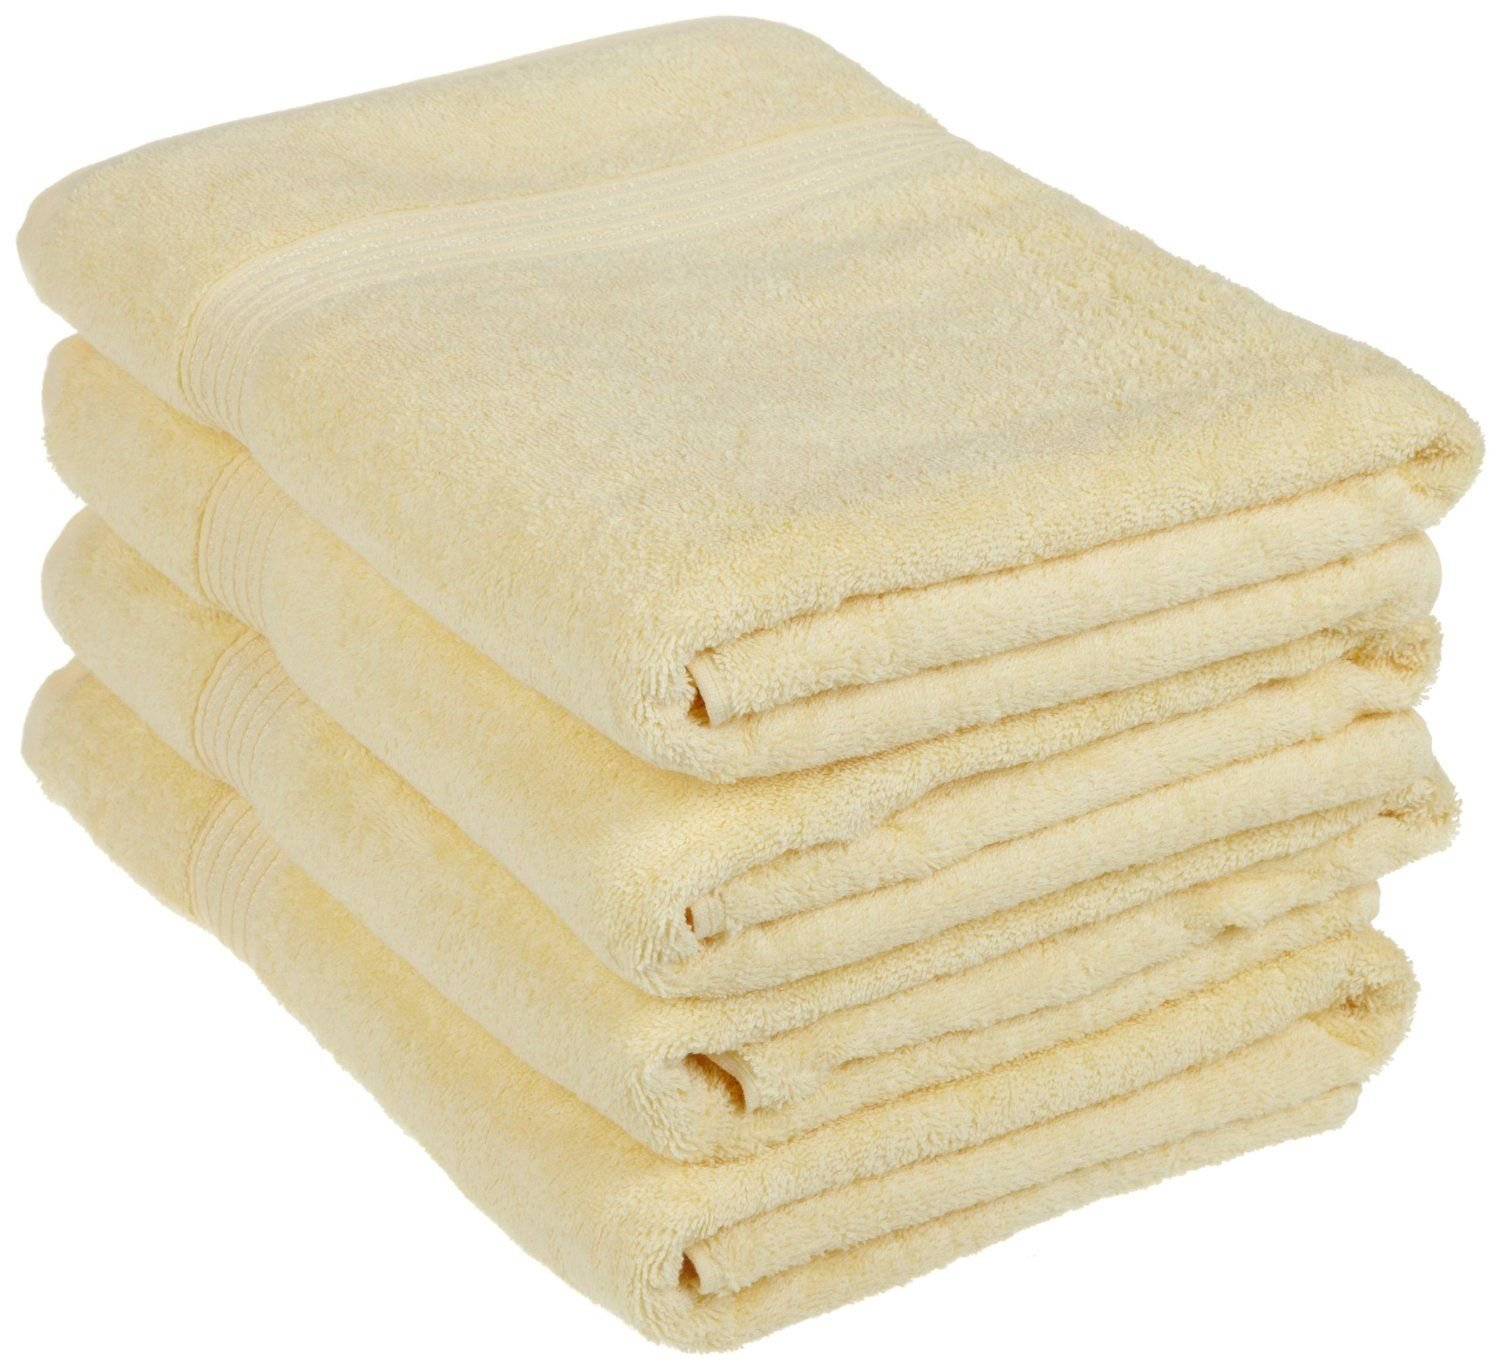 Superior Luxurious Soft Hotel & Spa Quality Bath Towel Set of 4, Made of 100% Premium Long-Staple Combed Cotton - Canary, 30'' x 54'' each